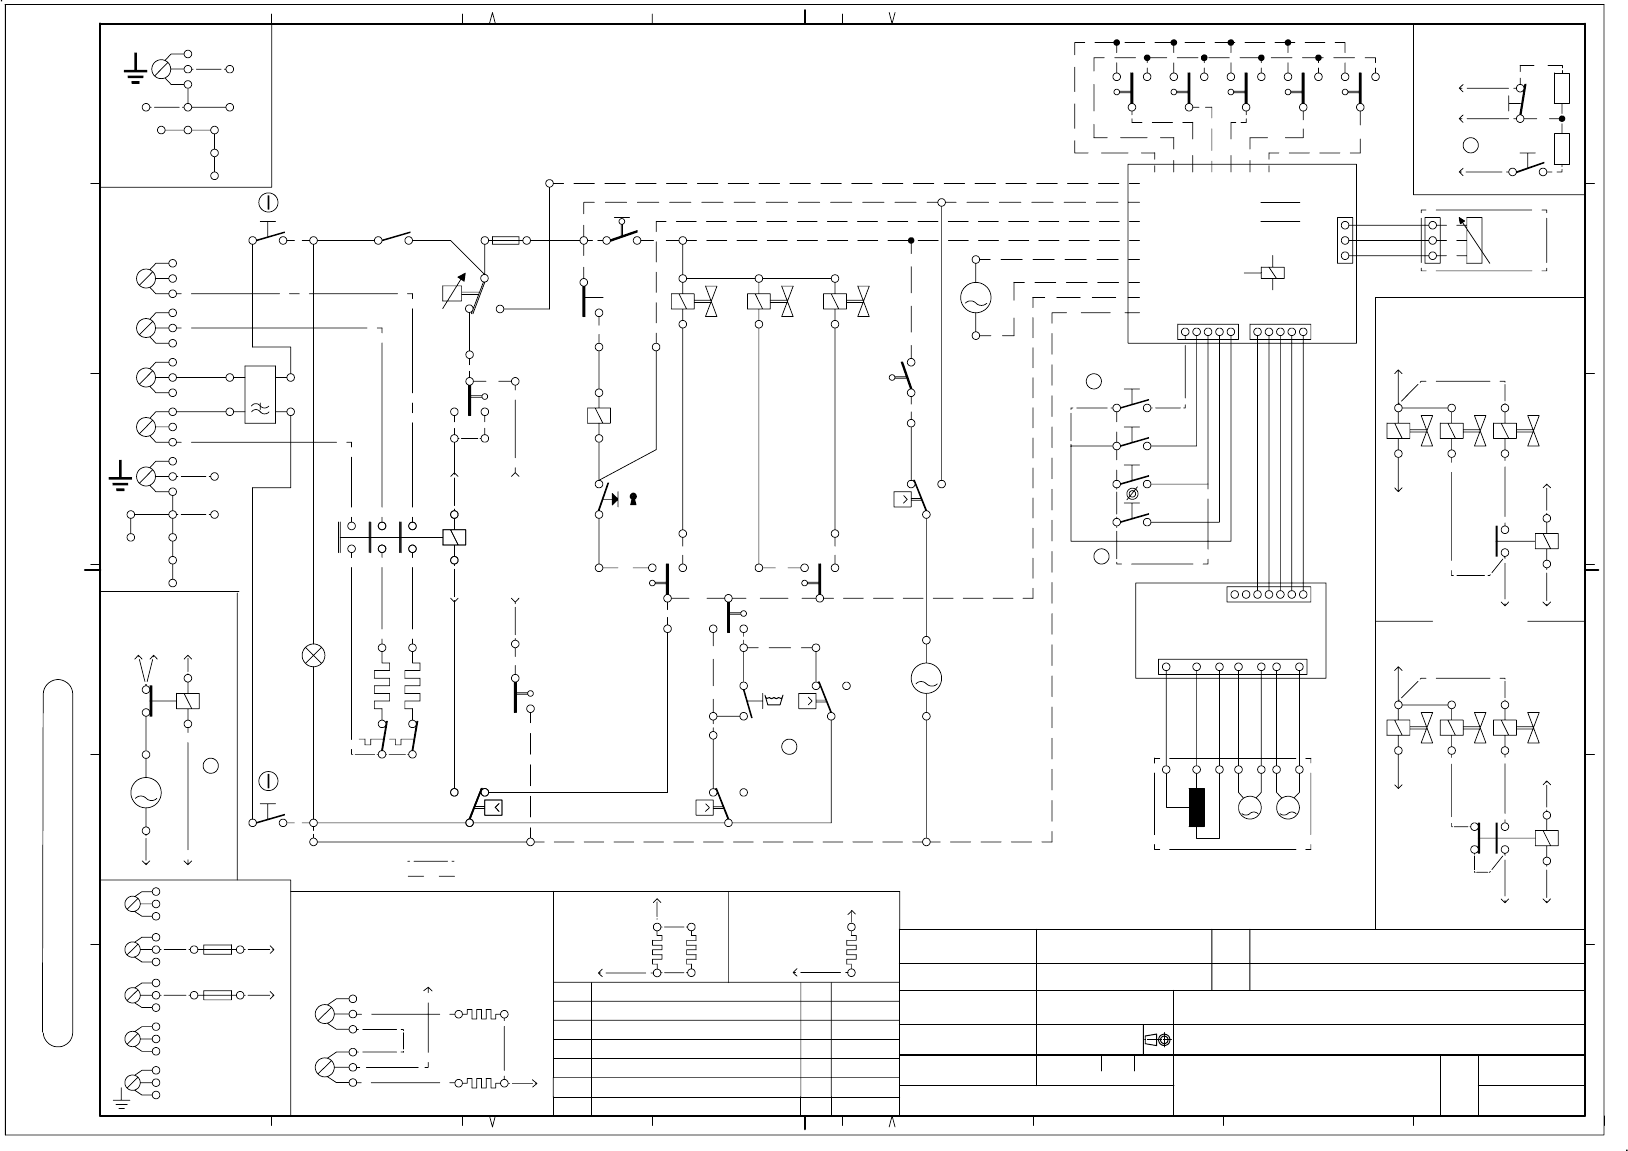 hight resolution of  whirlpool dishwasher wrg 1641 asko washing machine wiring diagram on ge dishwasher wiring frigidaire dishwasher